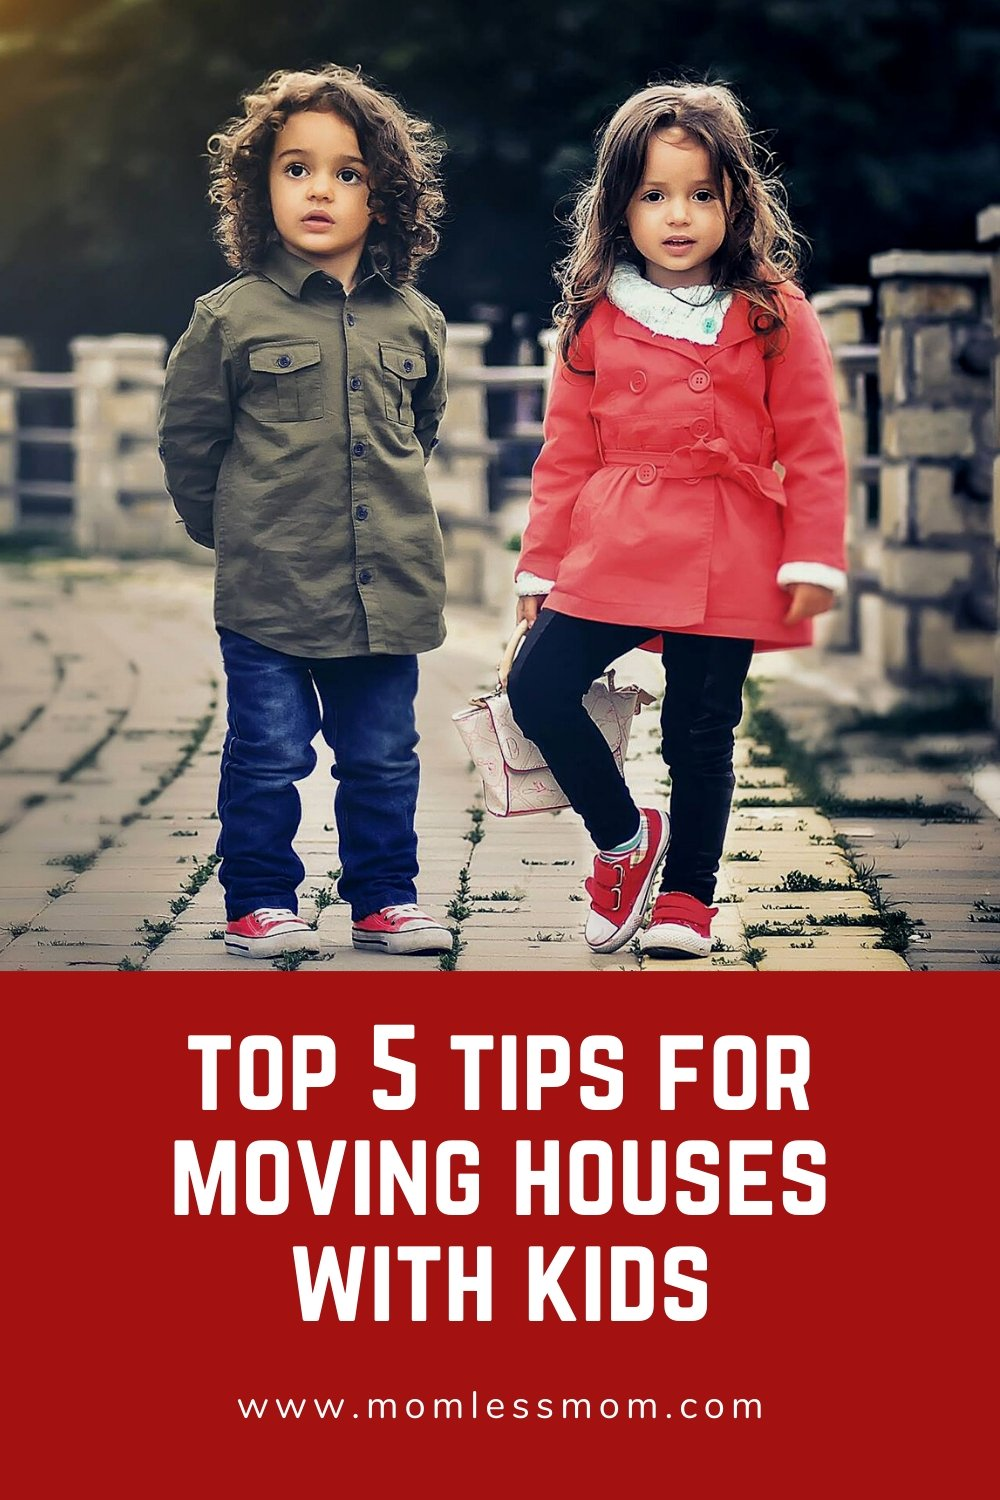 Top 5 Tips for Moving Houses with Kids